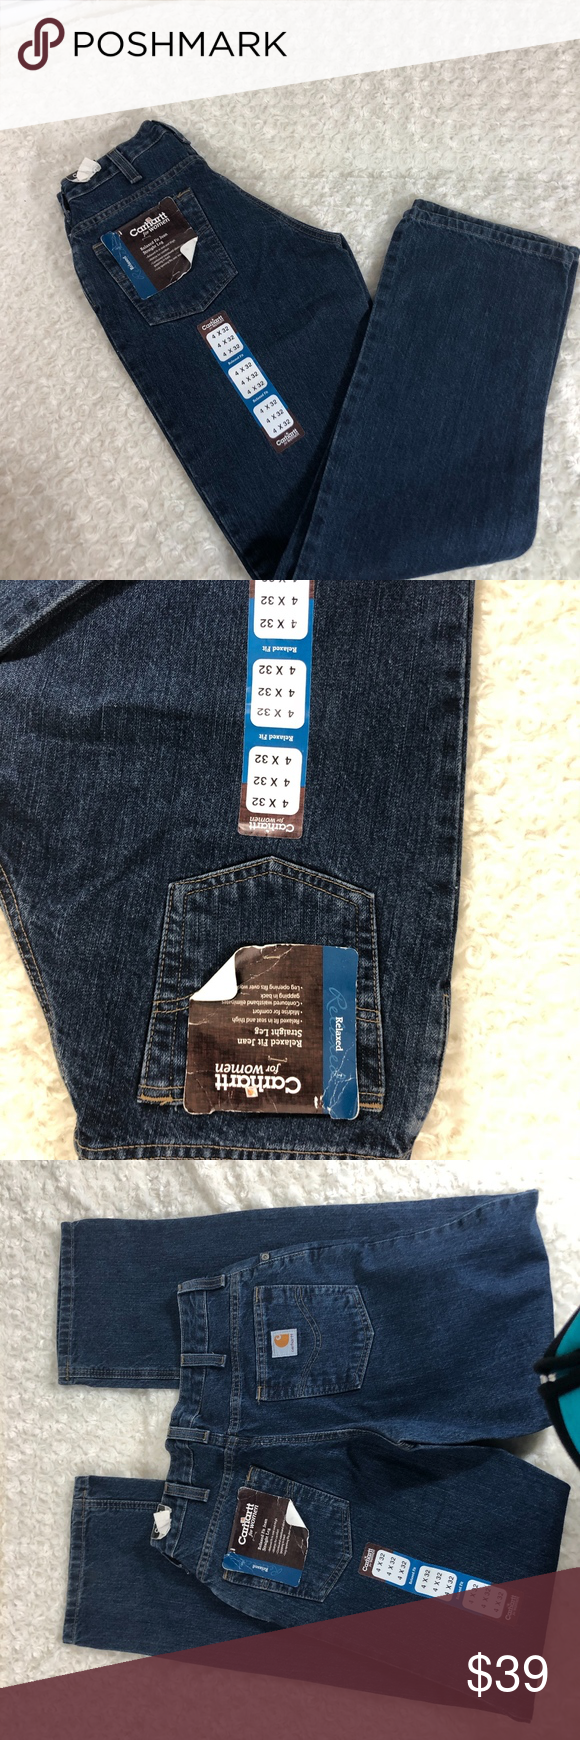 New Carhartt Womens Sz 4 32 Jeans WB160VID New Carhartt Womens Sz 4 32 Jeans WB160VID Relaxed Fit Straight Leg new with tags condition Carhartt Jeans Straight Leg #carharttwomen New Carhartt Womens Sz 4 32 Jeans WB160VID New Carhartt Womens Sz 4 32 Jeans WB160VID Relaxed Fit Straight Leg new with tags condition Carhartt Jeans Straight Leg #carharttwomen